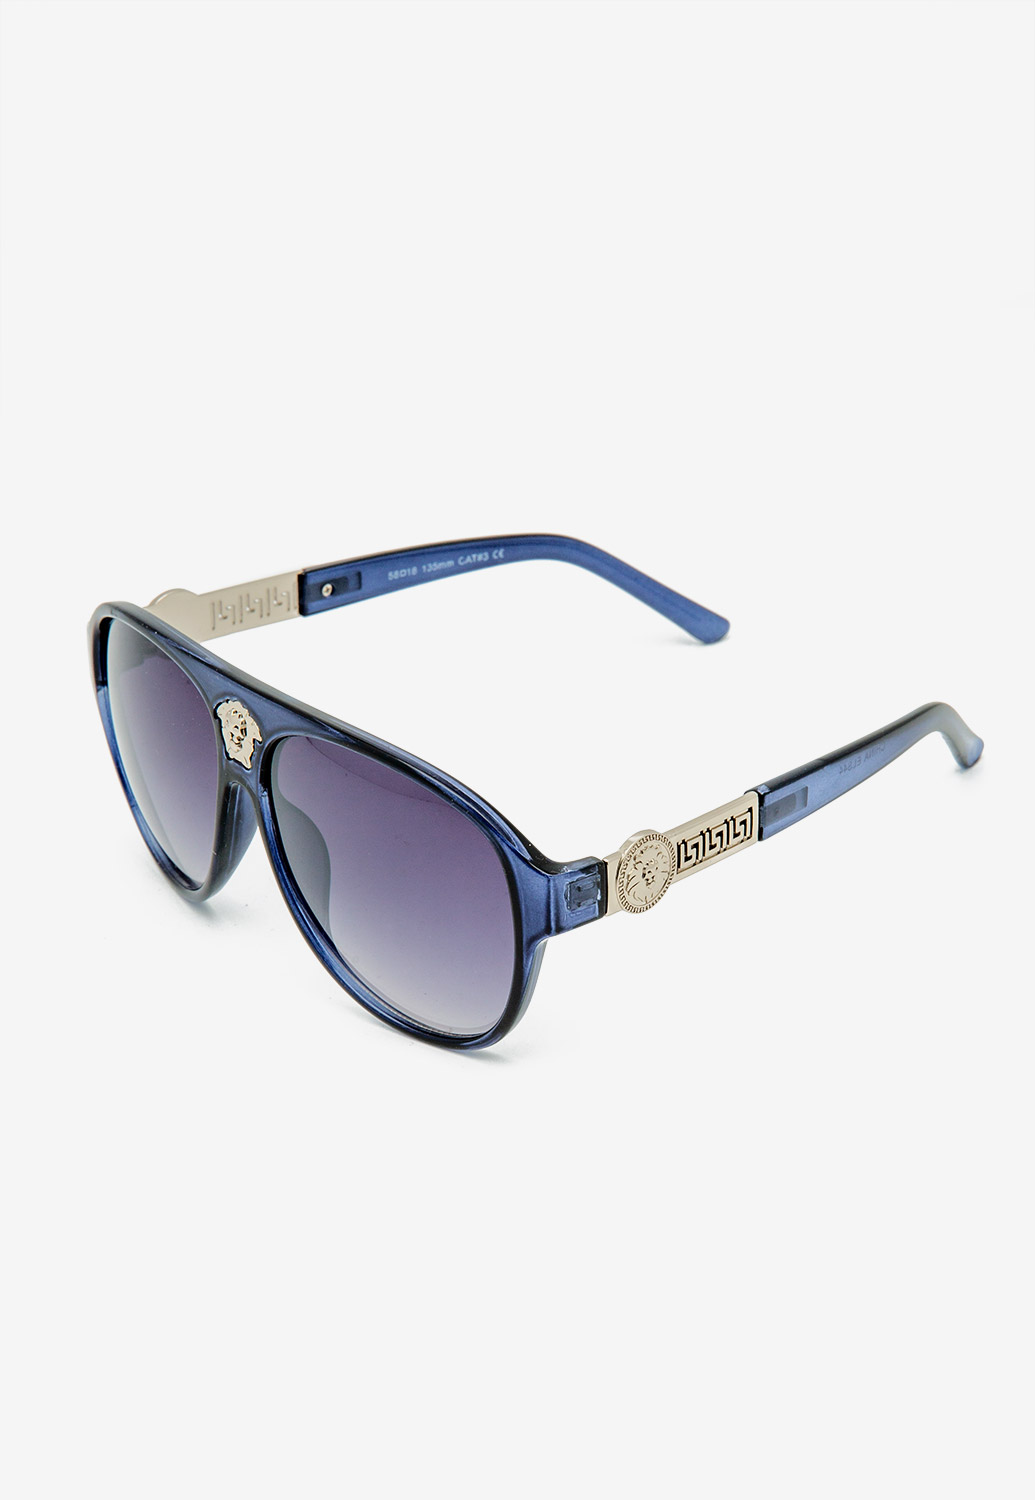 Retro Square Summer Sunglasses